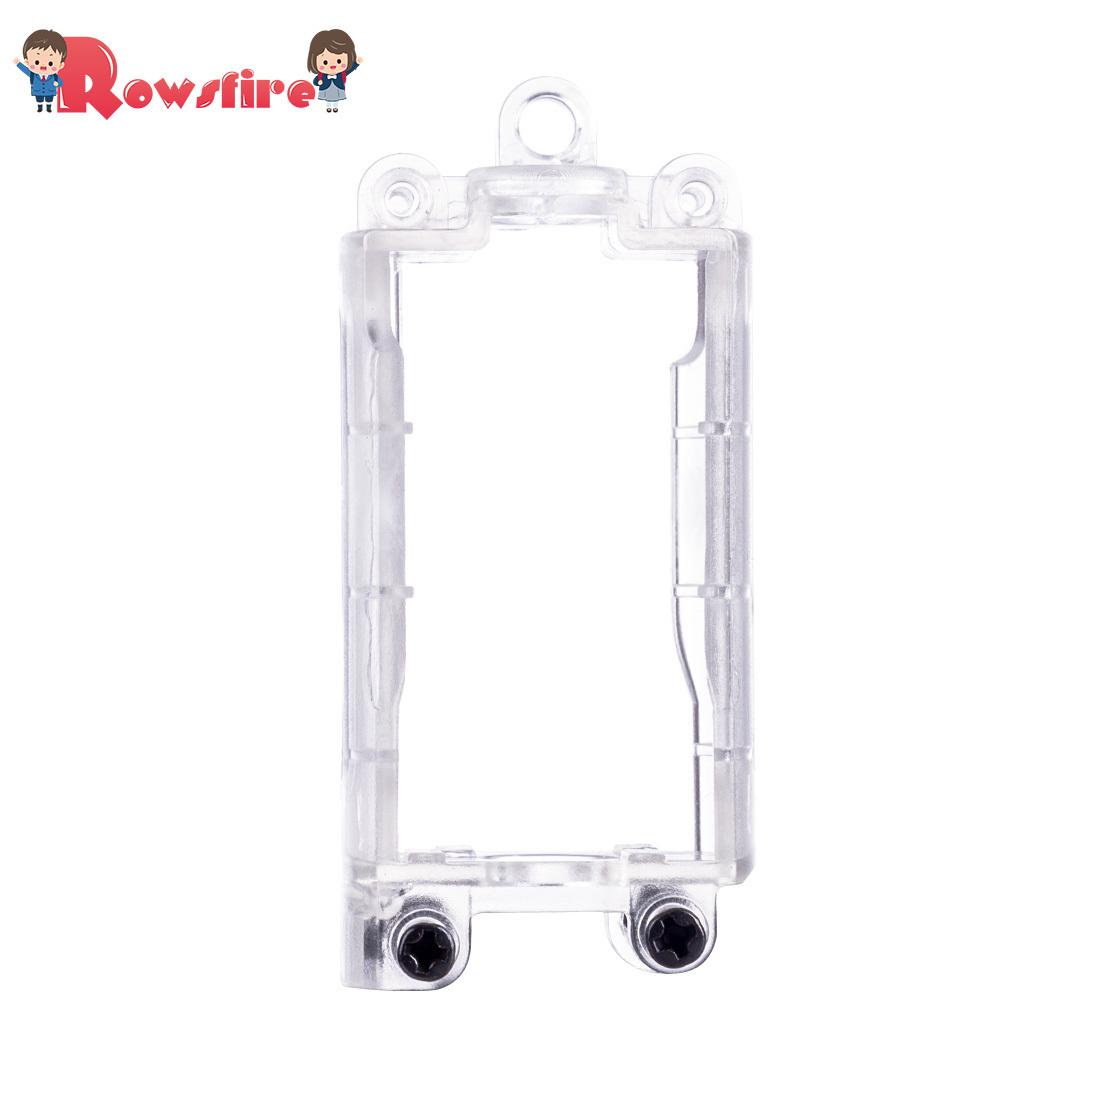 Rowsfire 1 Pcs JM Original Motor Frame For JM Gen.8 M-4A1 Water Gel Beads Blaster Modification Hot Sale - Transparent